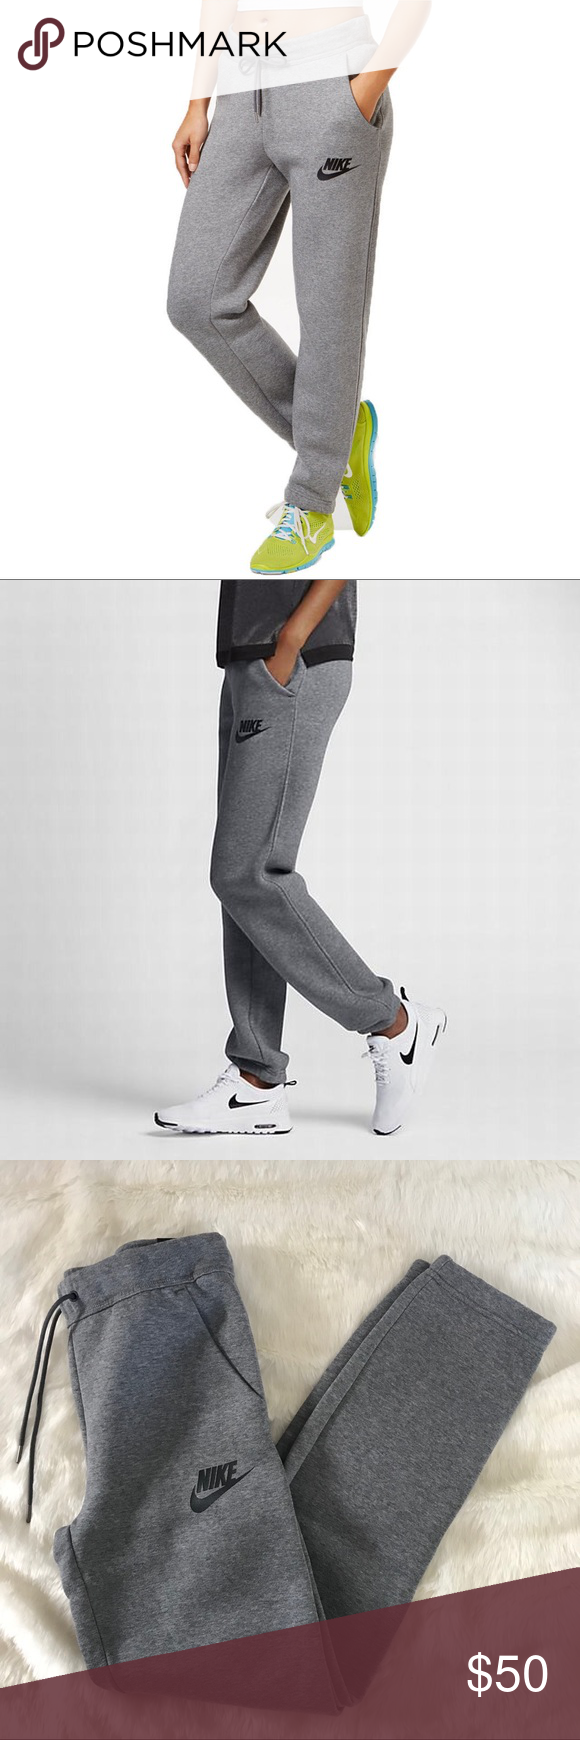 Nike Grey Baggy Fleece Sweatpants •Loose grey sweatpants  •Size XS and S available, relaxed fit.  •New with tag.  •No trades, no holds. Nike Pants Track Pants & Joggers